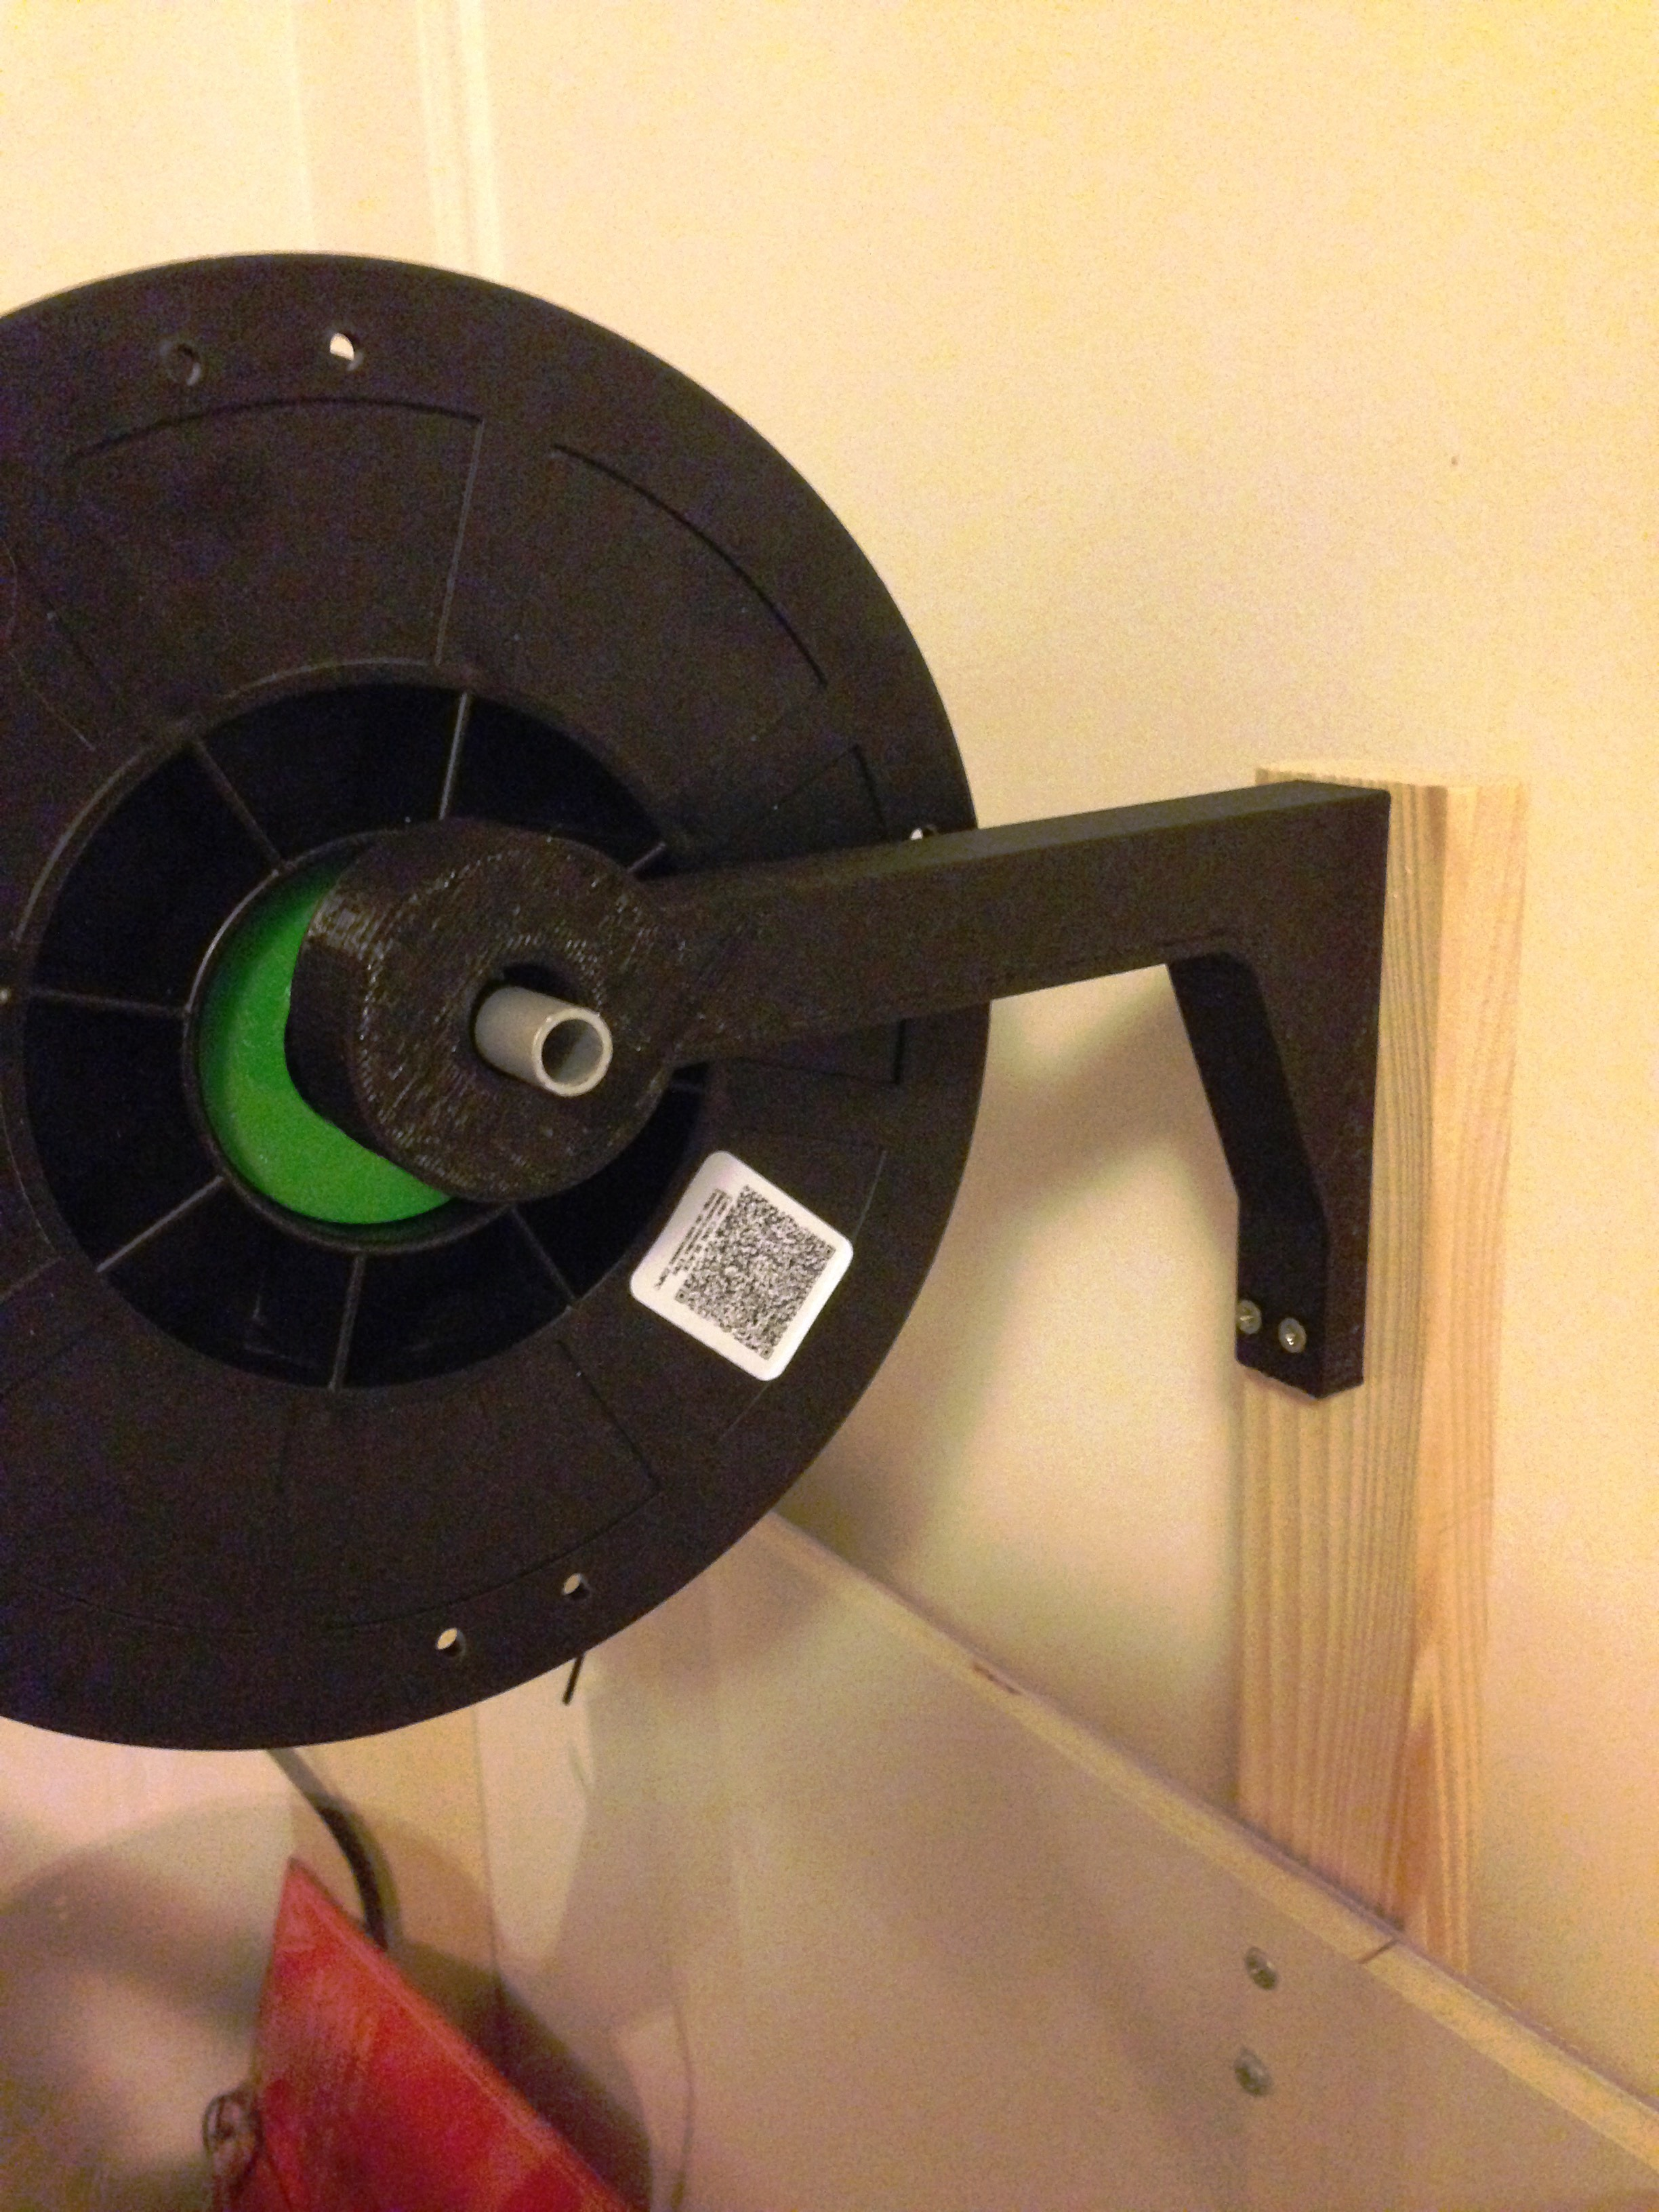 IMG_1788.JPG Download free STL file Spool support arm • 3D printer design, touchthebitum